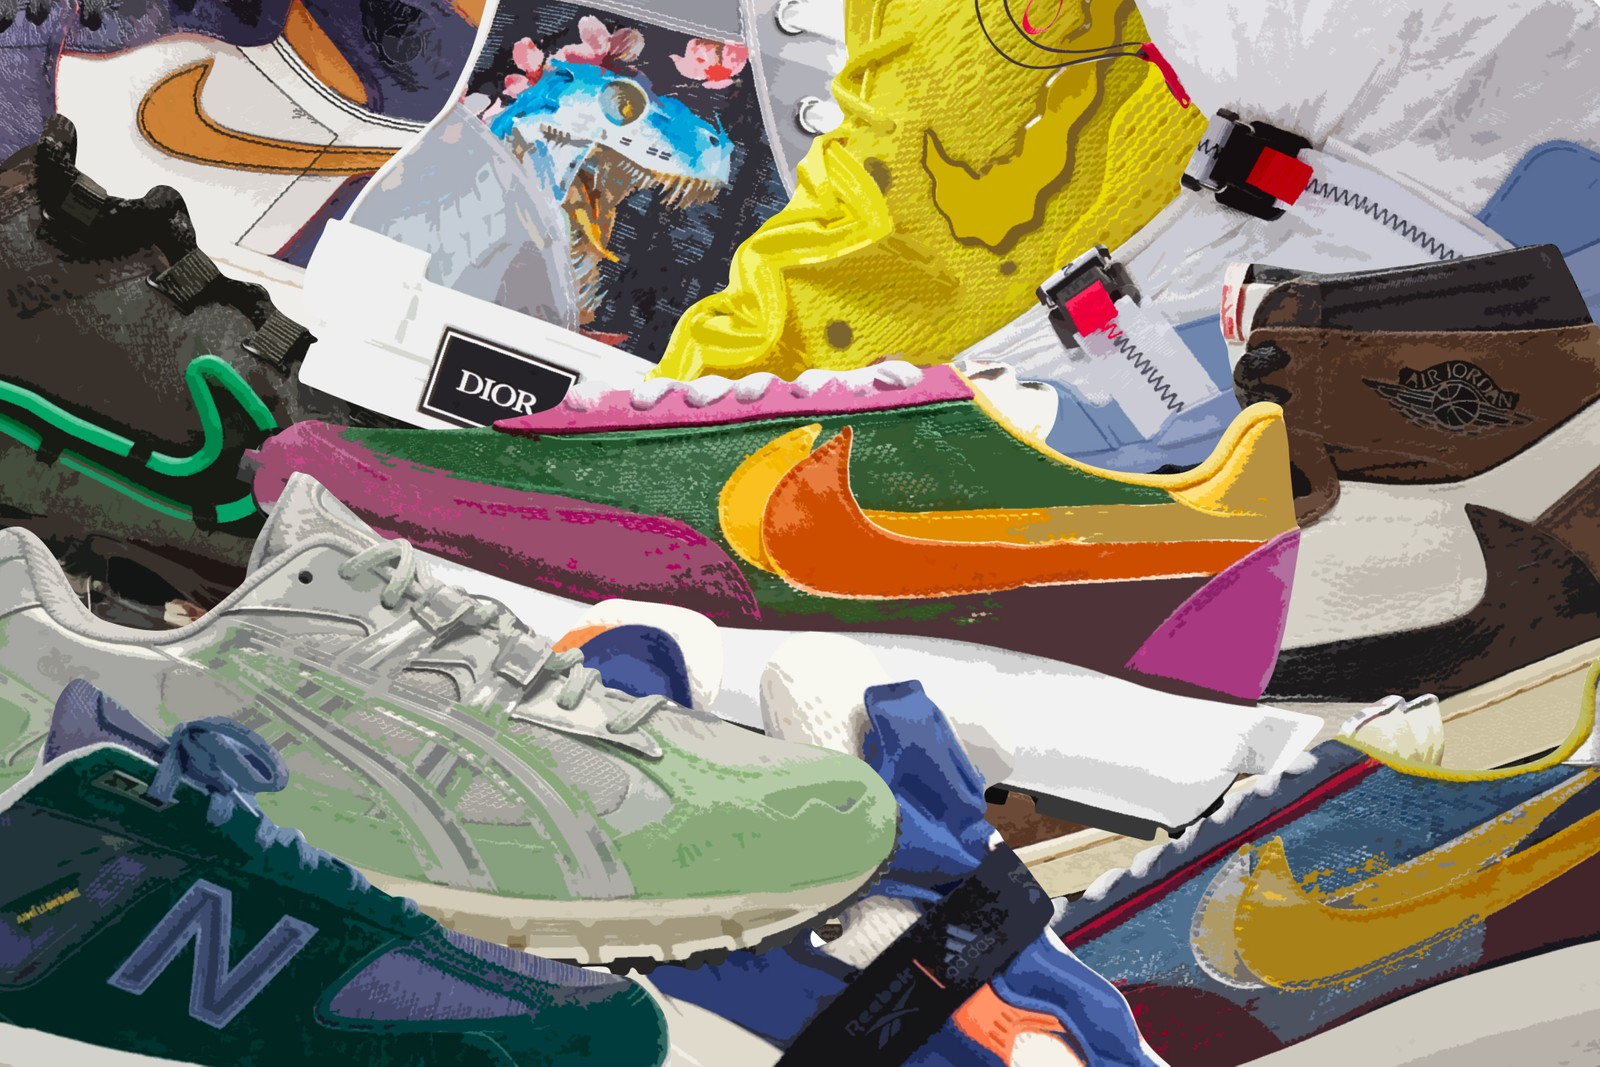 10 ten Best top kicks shoes footwear Sneakers year 2019 nike sb air jordan brand reebok adidas asics new balance salomon palace bape ultraboost boost a bathing ape skateboards speedcross 4 aime leon dore 990 990v5 1  travis scott cactus jack la to chicago awake ny asics gel kayano 5 360 bodega 997 cactus plant flea market vapormax Hajime Sorayama Dior B23 Instapump Fury Boost sacai ldwaffle waffle SpongeBob SquarePants kyrie 5 tom sachs mars yard overshoe